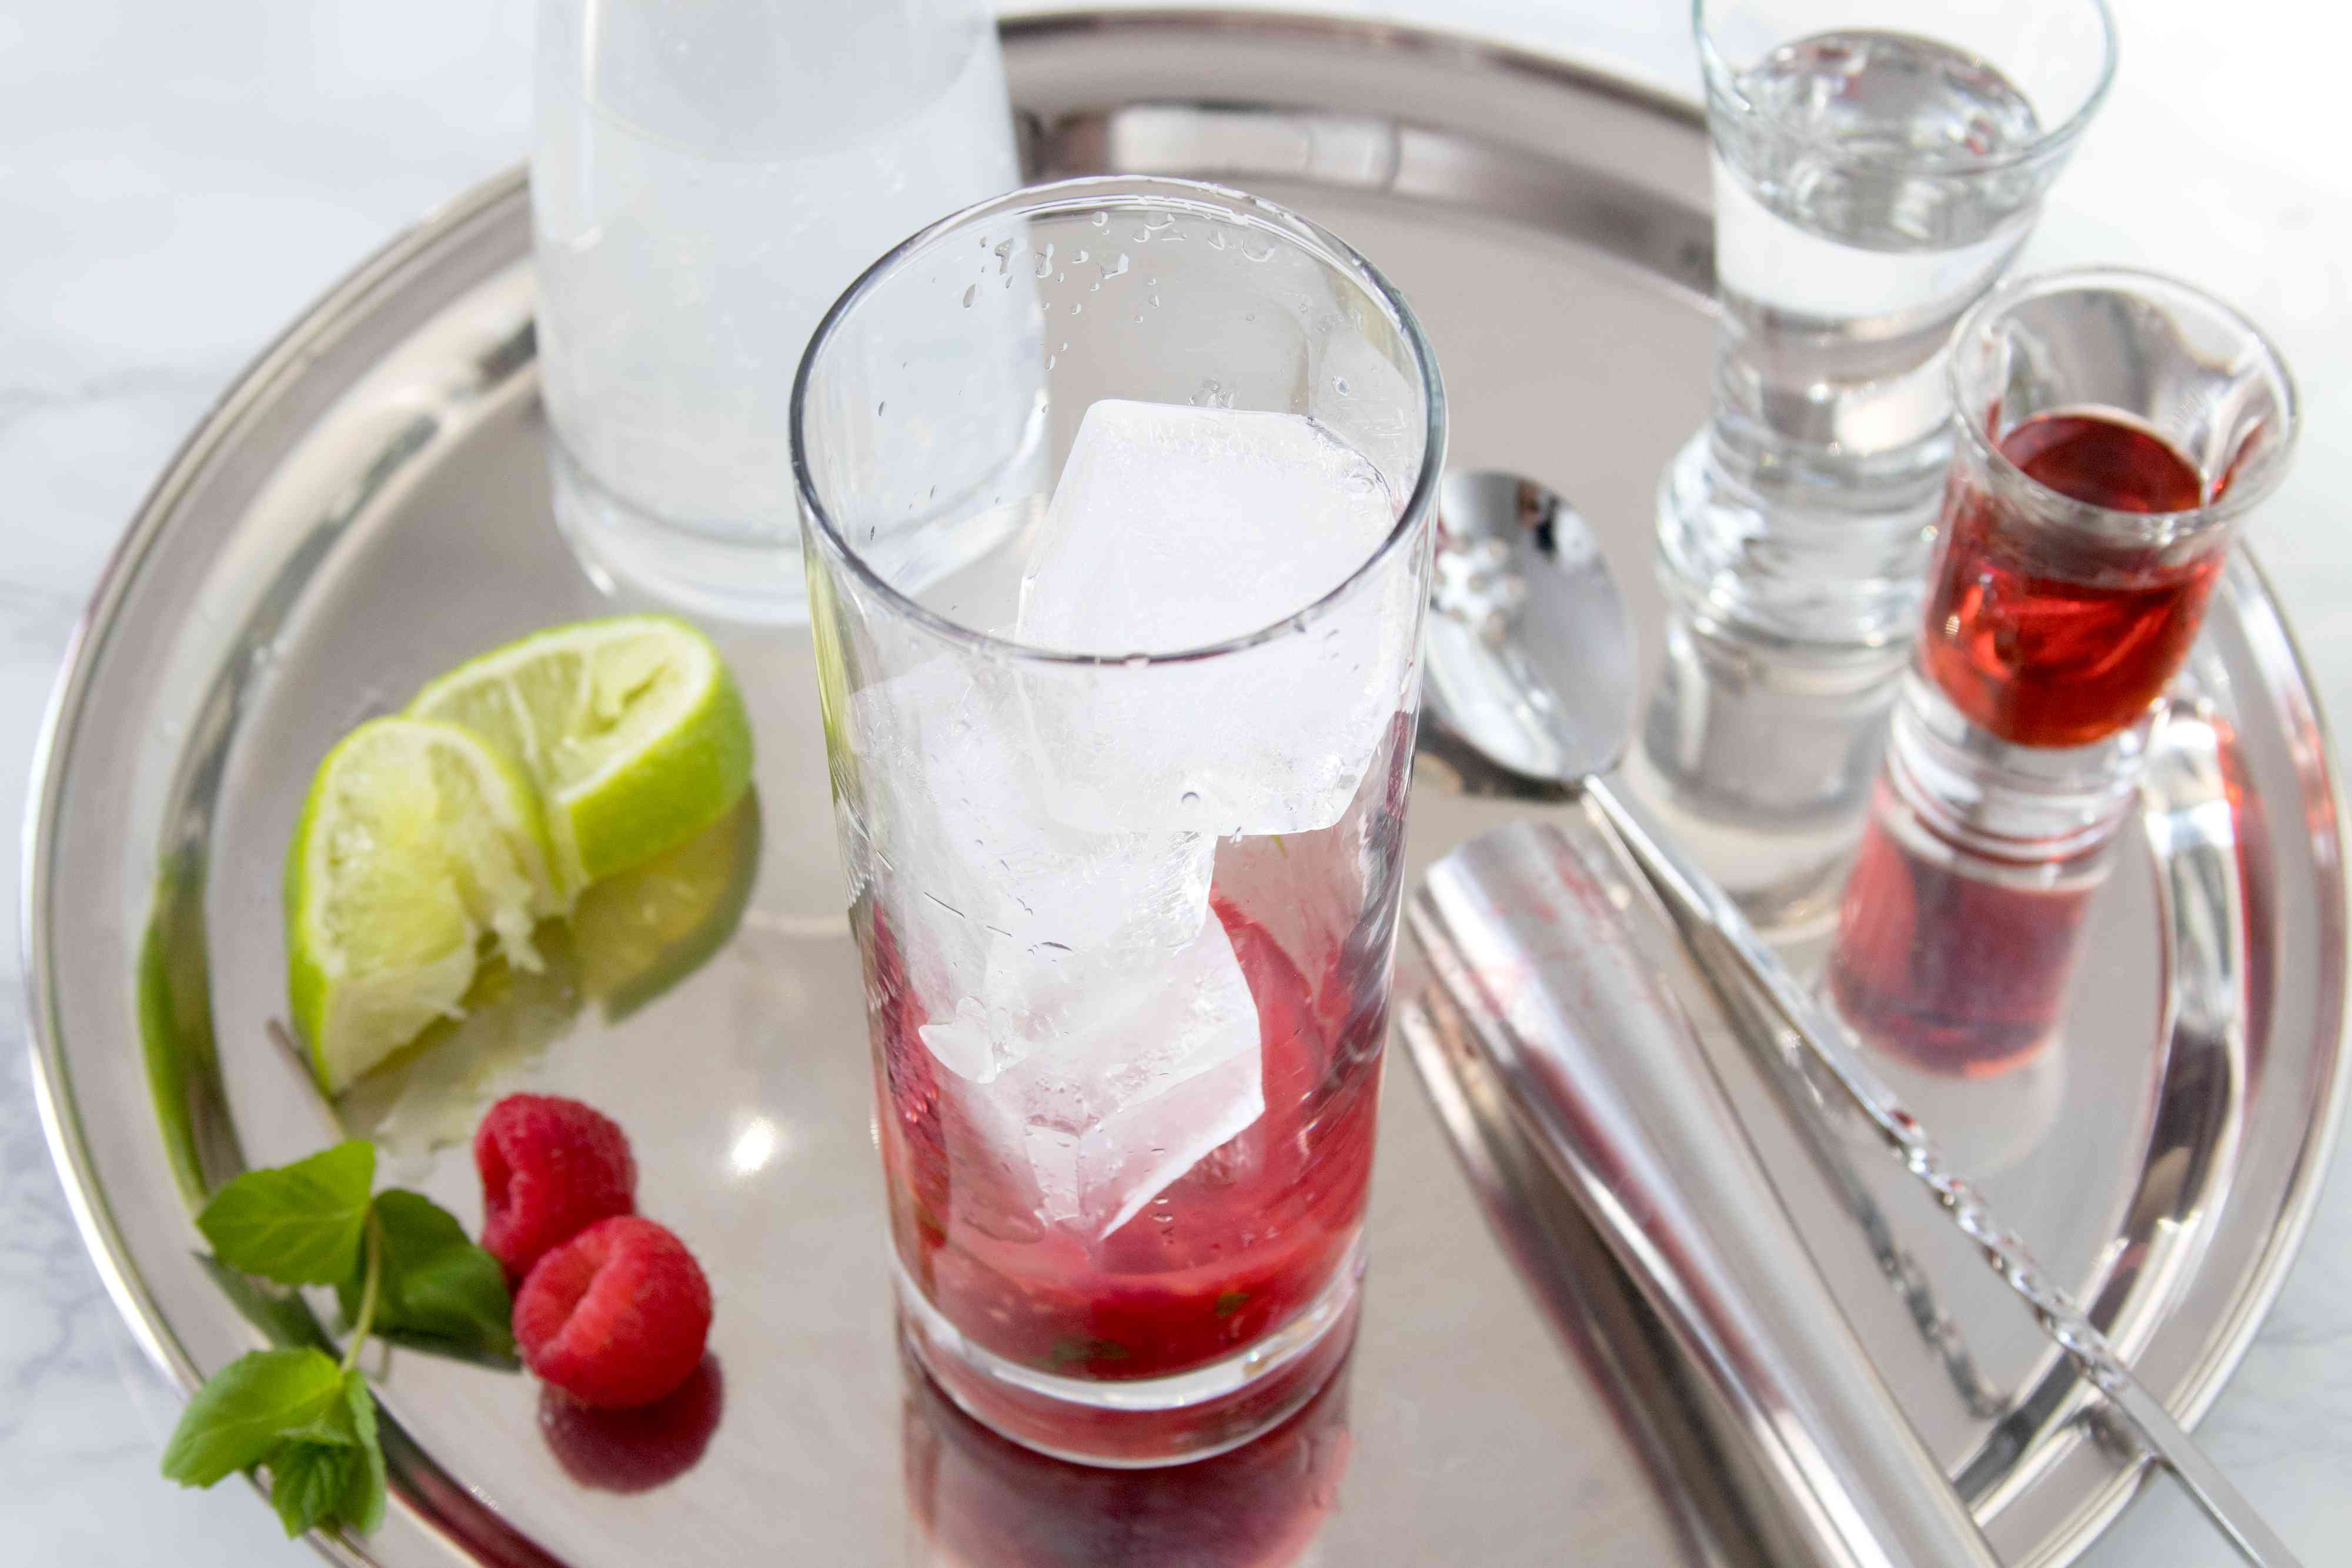 Ice and lime juice added to the glass